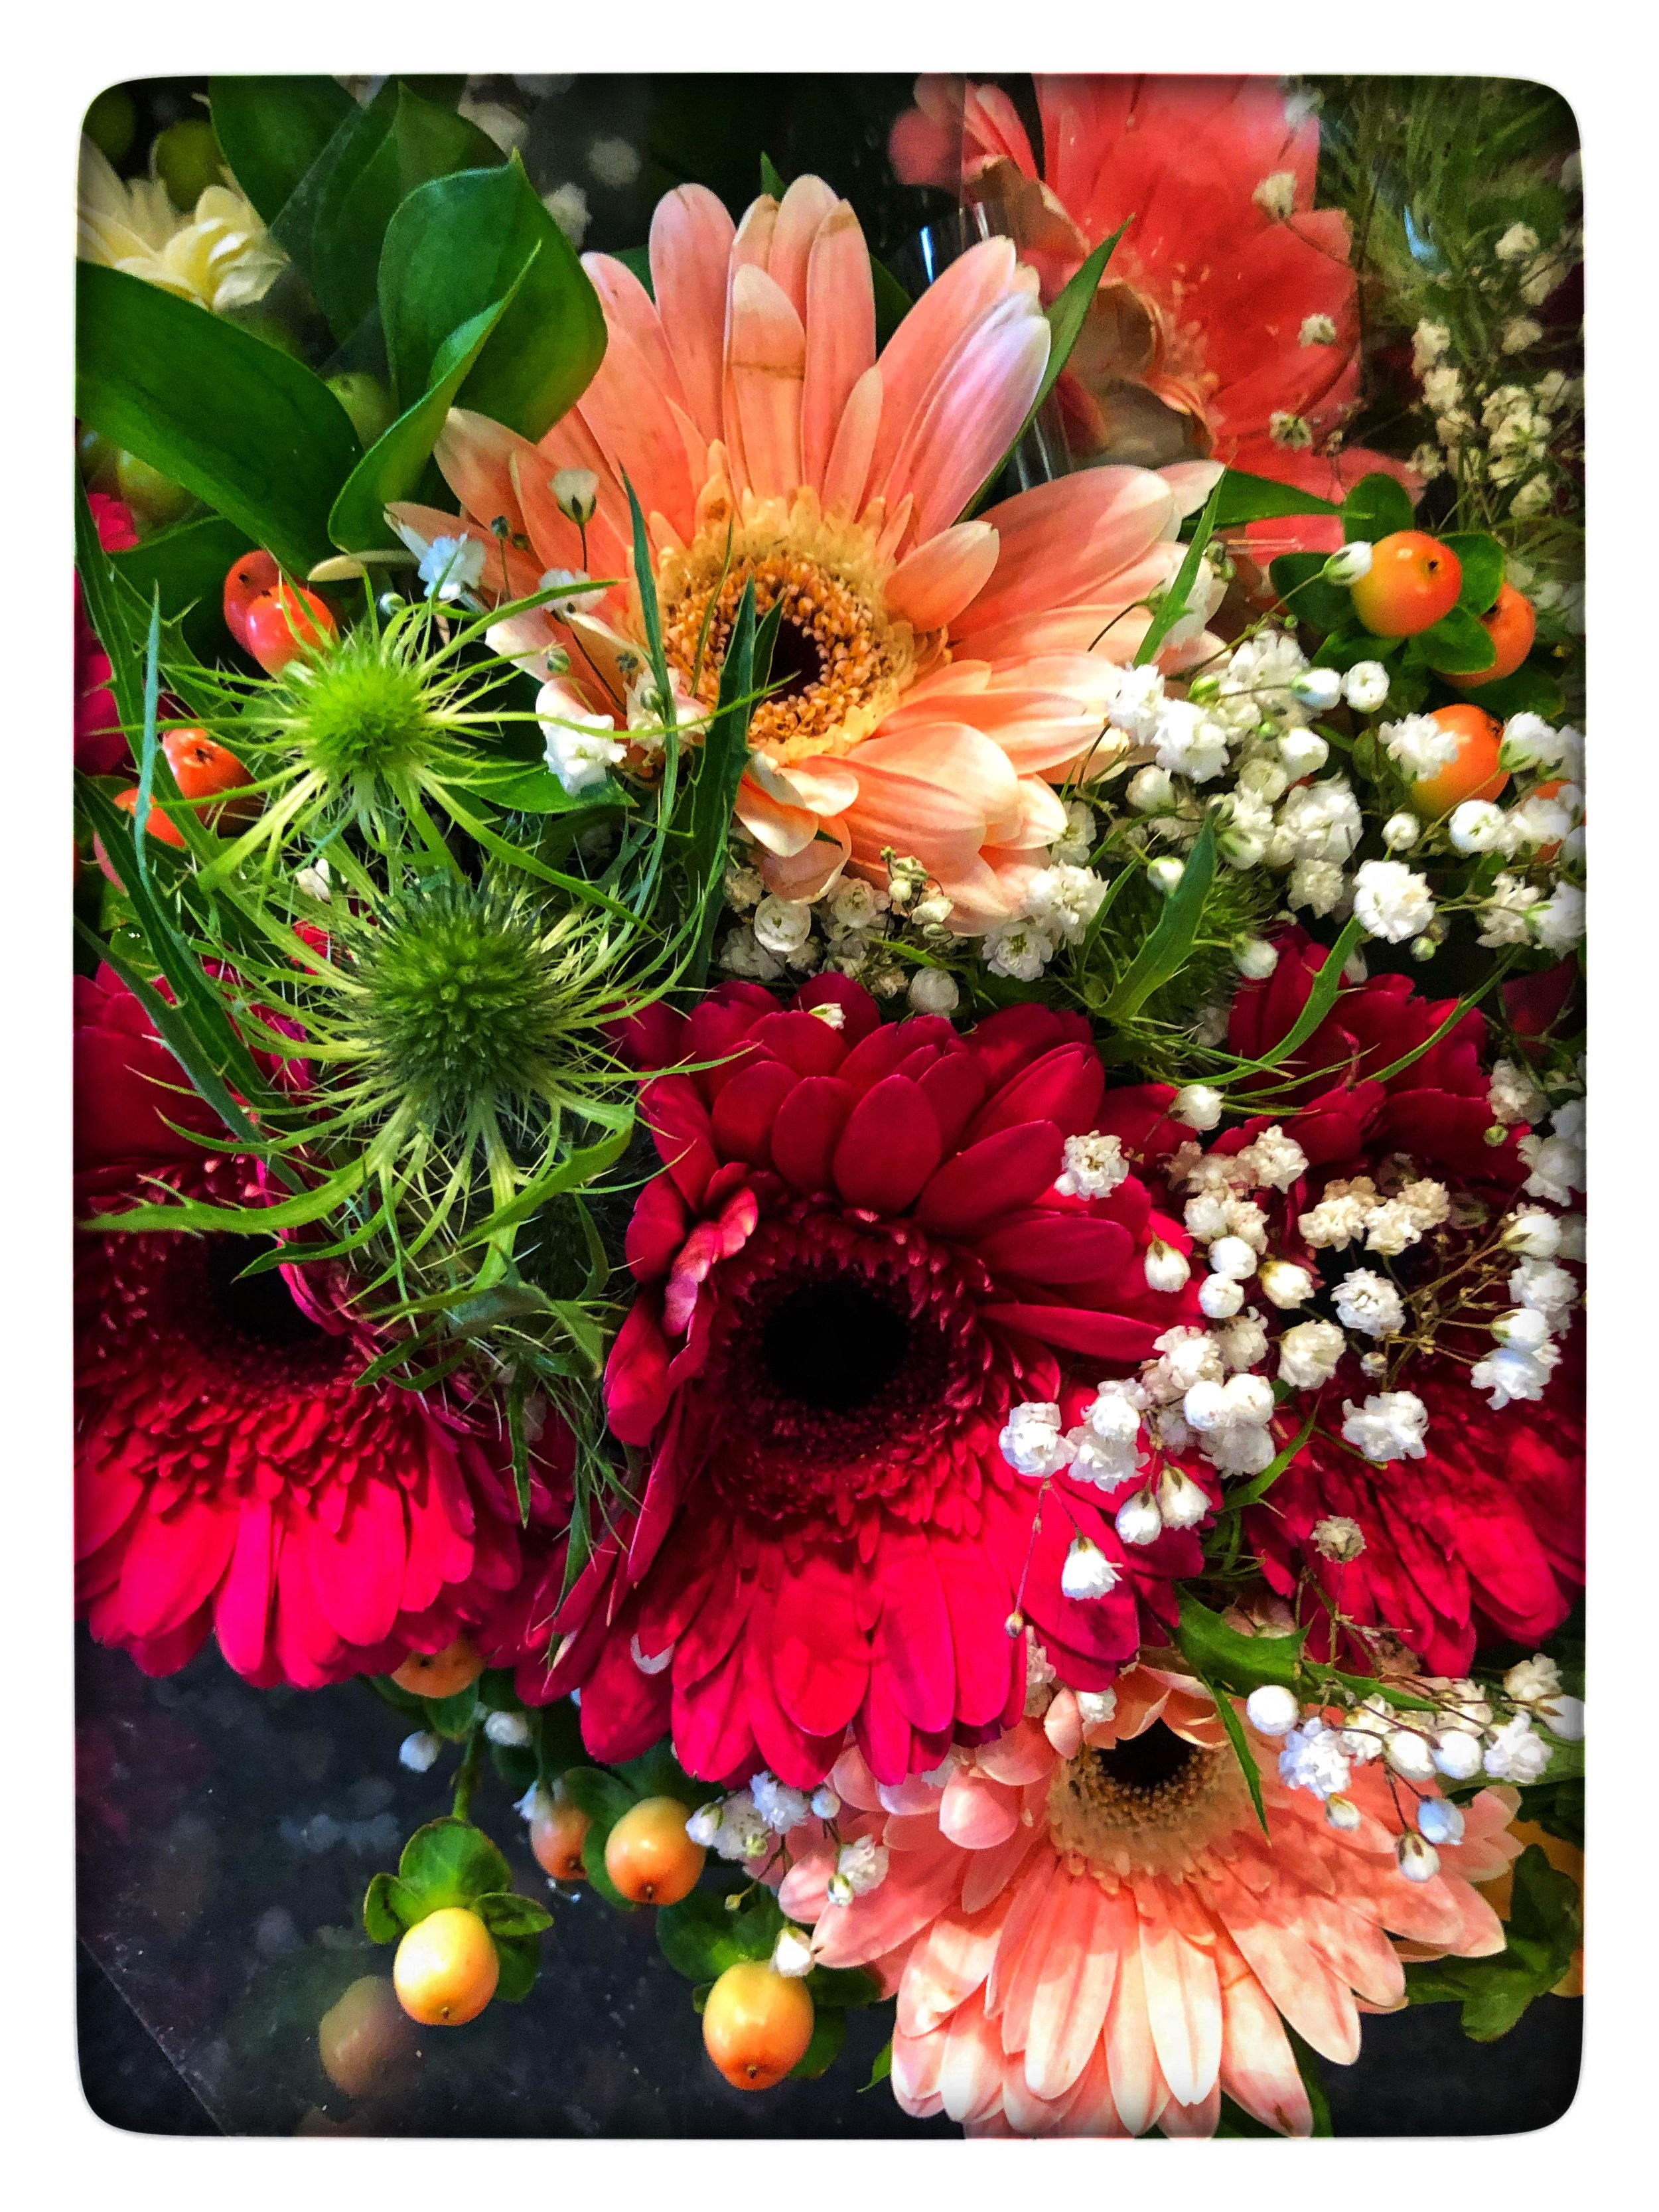 Cheerful and vibrant holiday flowers made by our florists at Russo's.